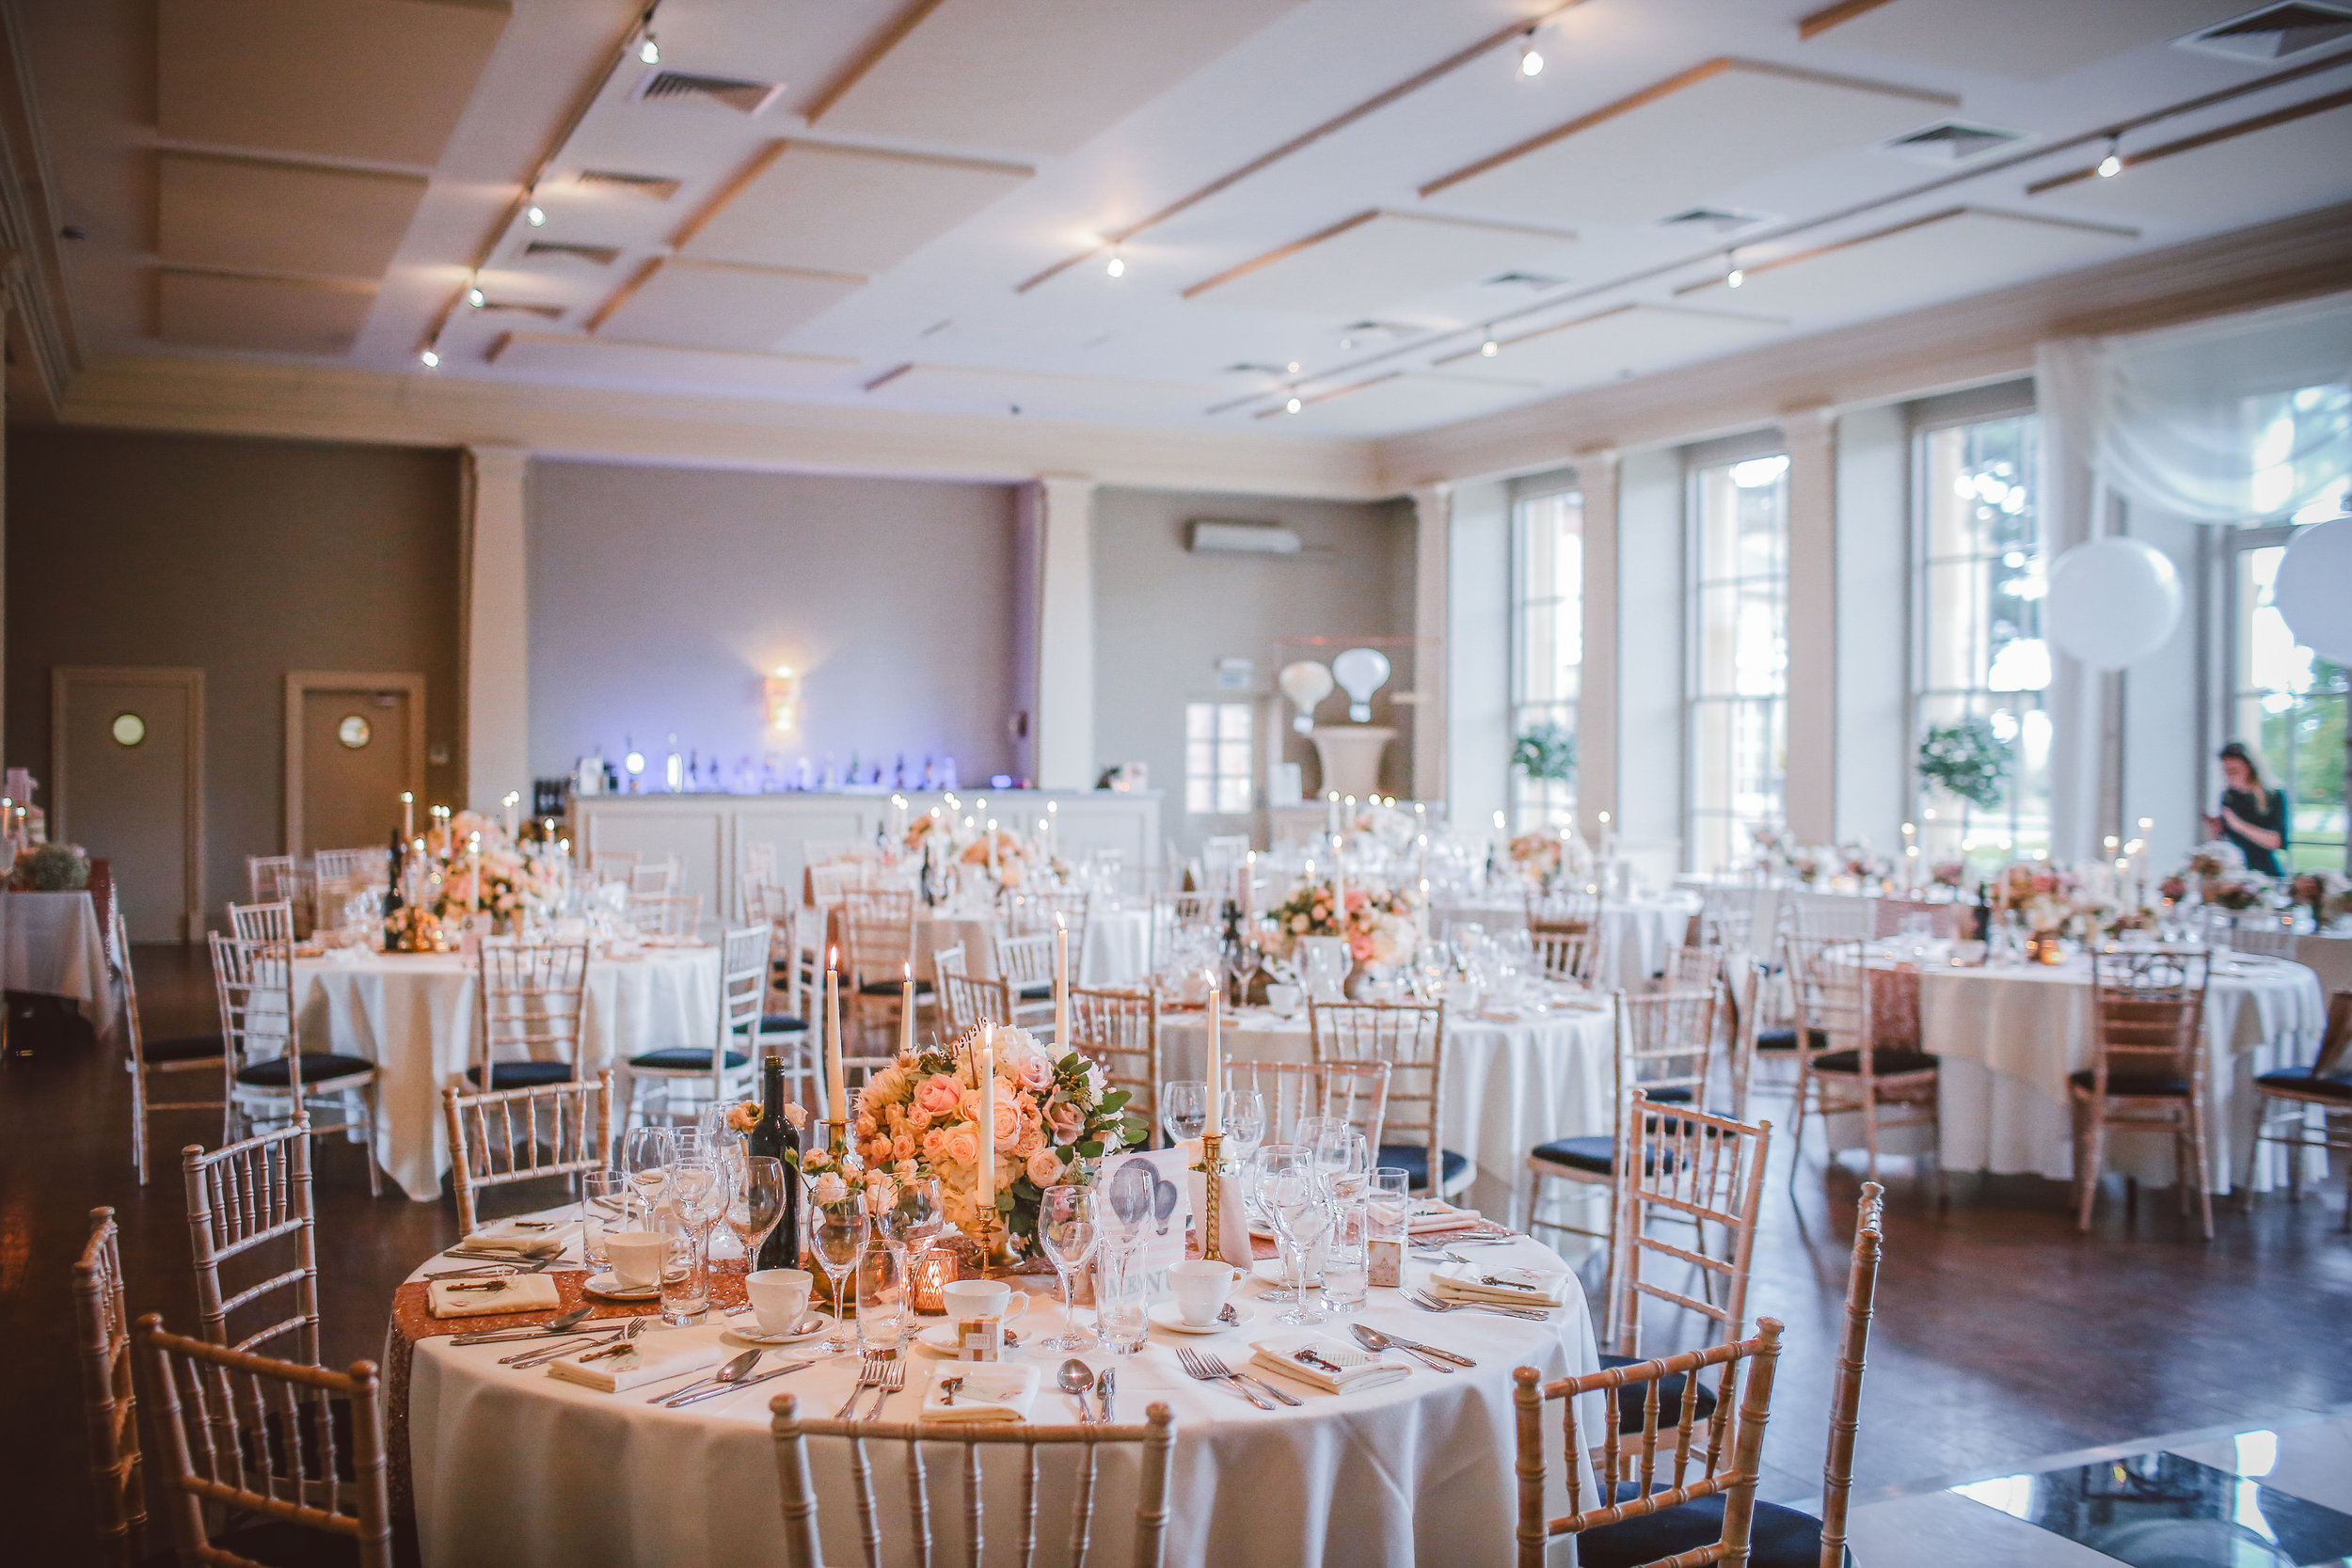 Wedding & Event planning and coordination. -